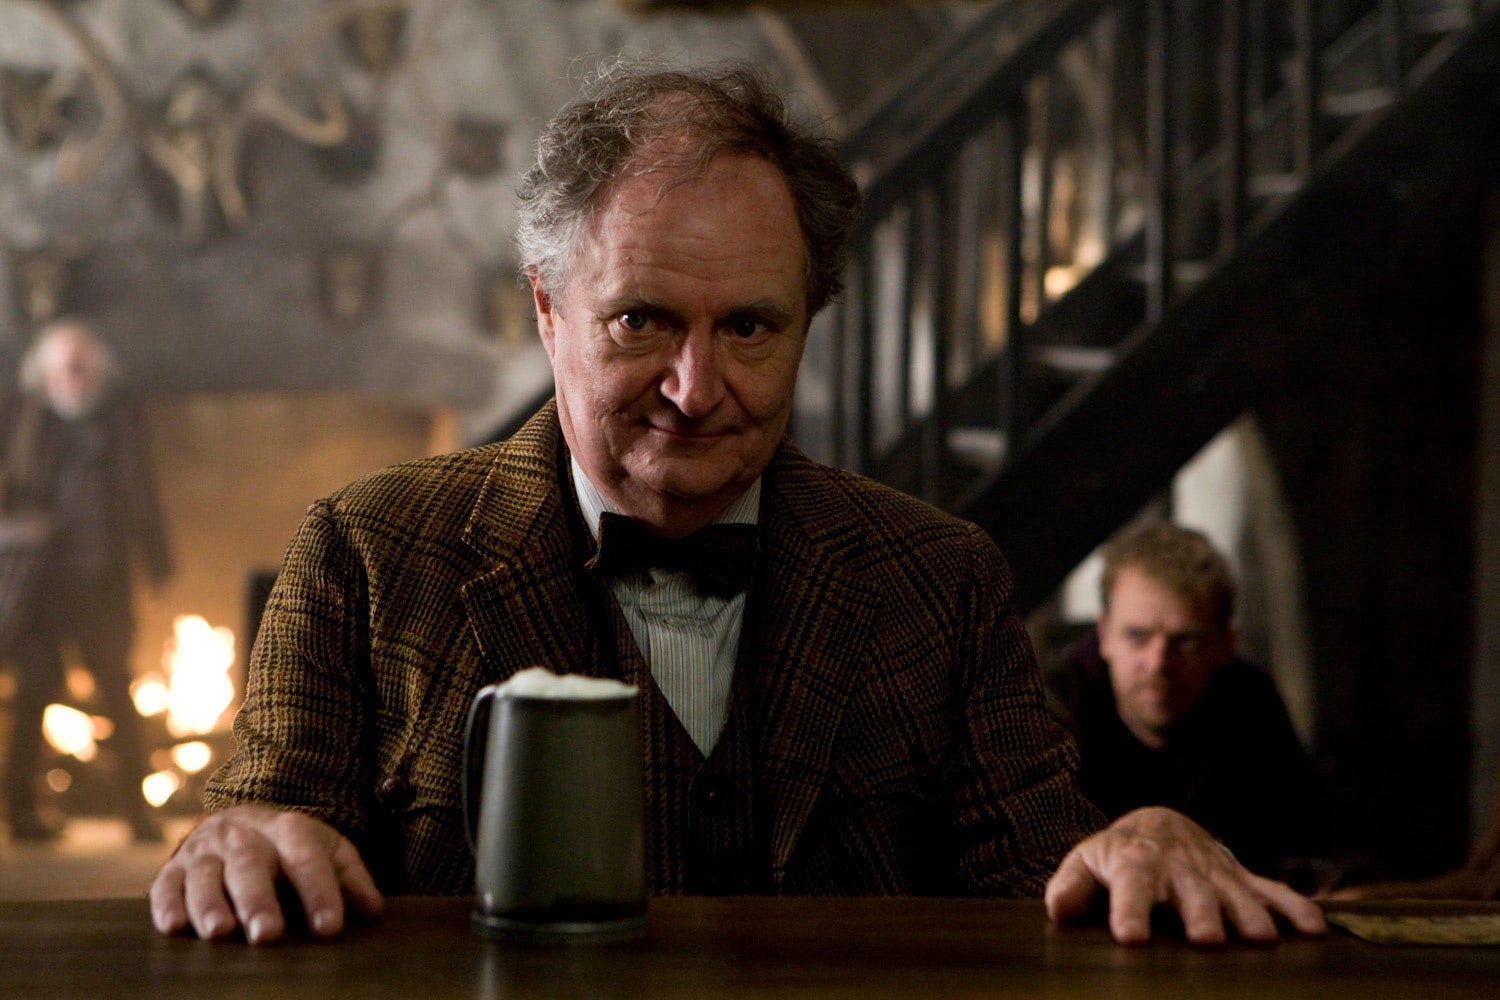 Horace Slughorn at The Three Broomsticks